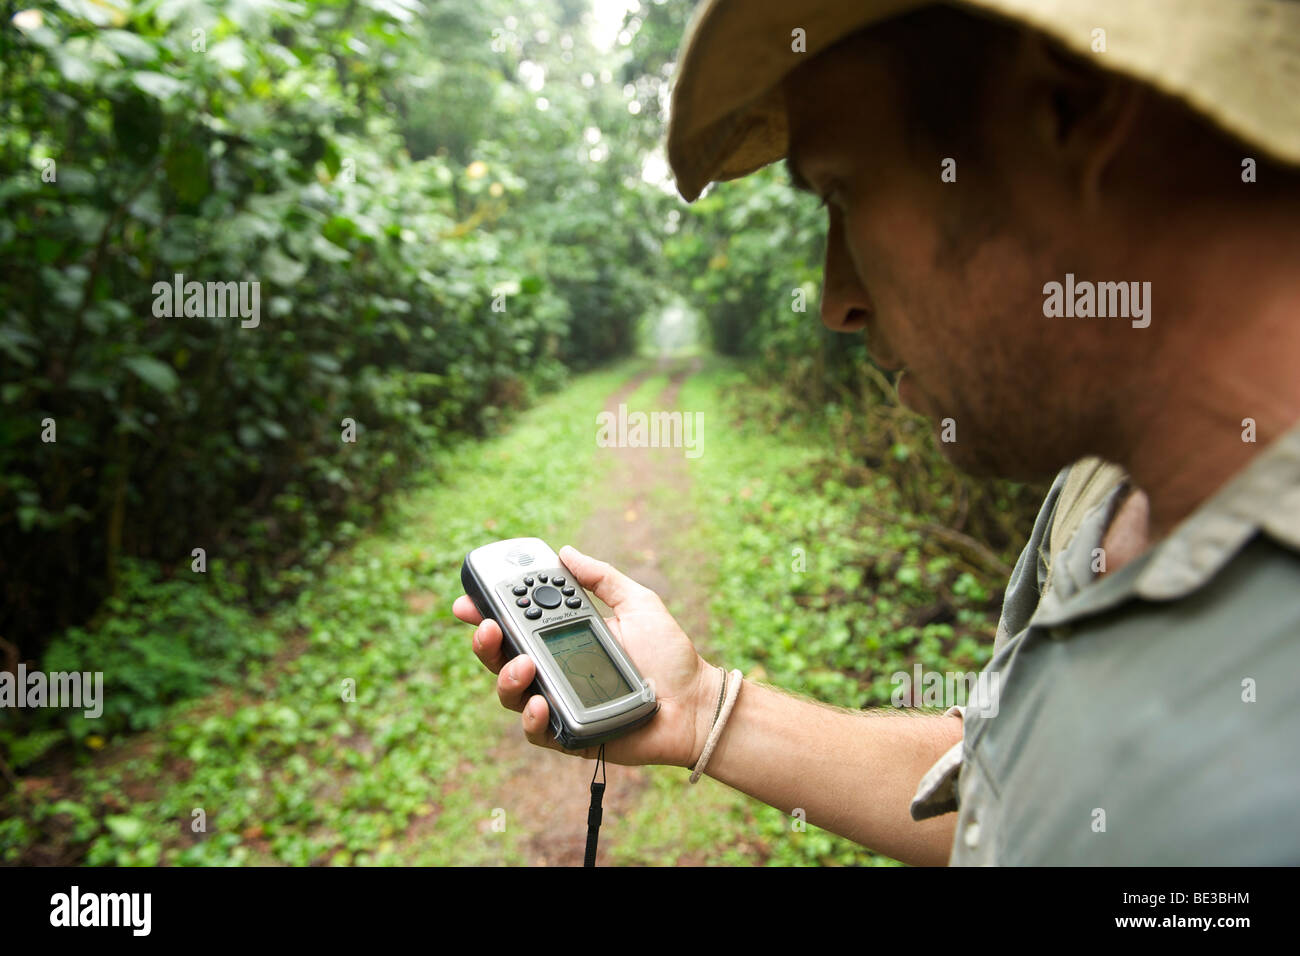 Man with a GPS in the rain forests of Bwindi Impenetrable National Park in southern Uganda. - Stock Image